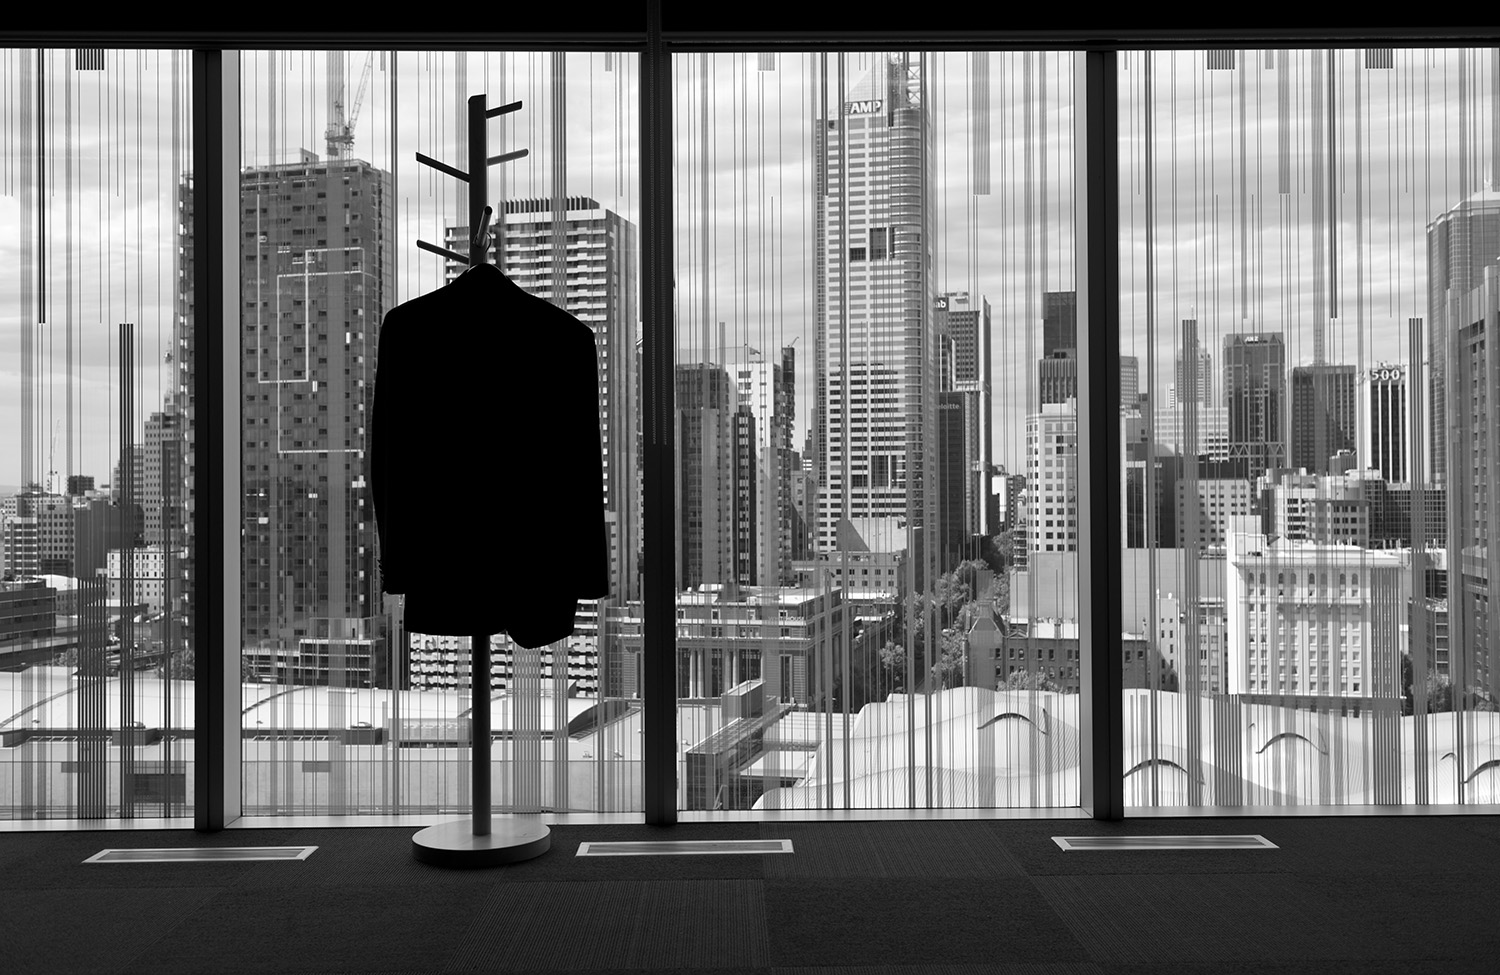 image of AARONTAIT COPYRIGHTED 2014 160 CORPORATE BUSINESS EXECUTIVES POWER COMMERCE DOCUMENTARY REPORTAGE OFFICE SILHOUETTE METAPHOR SUIT COAT VIEW PANORAMA